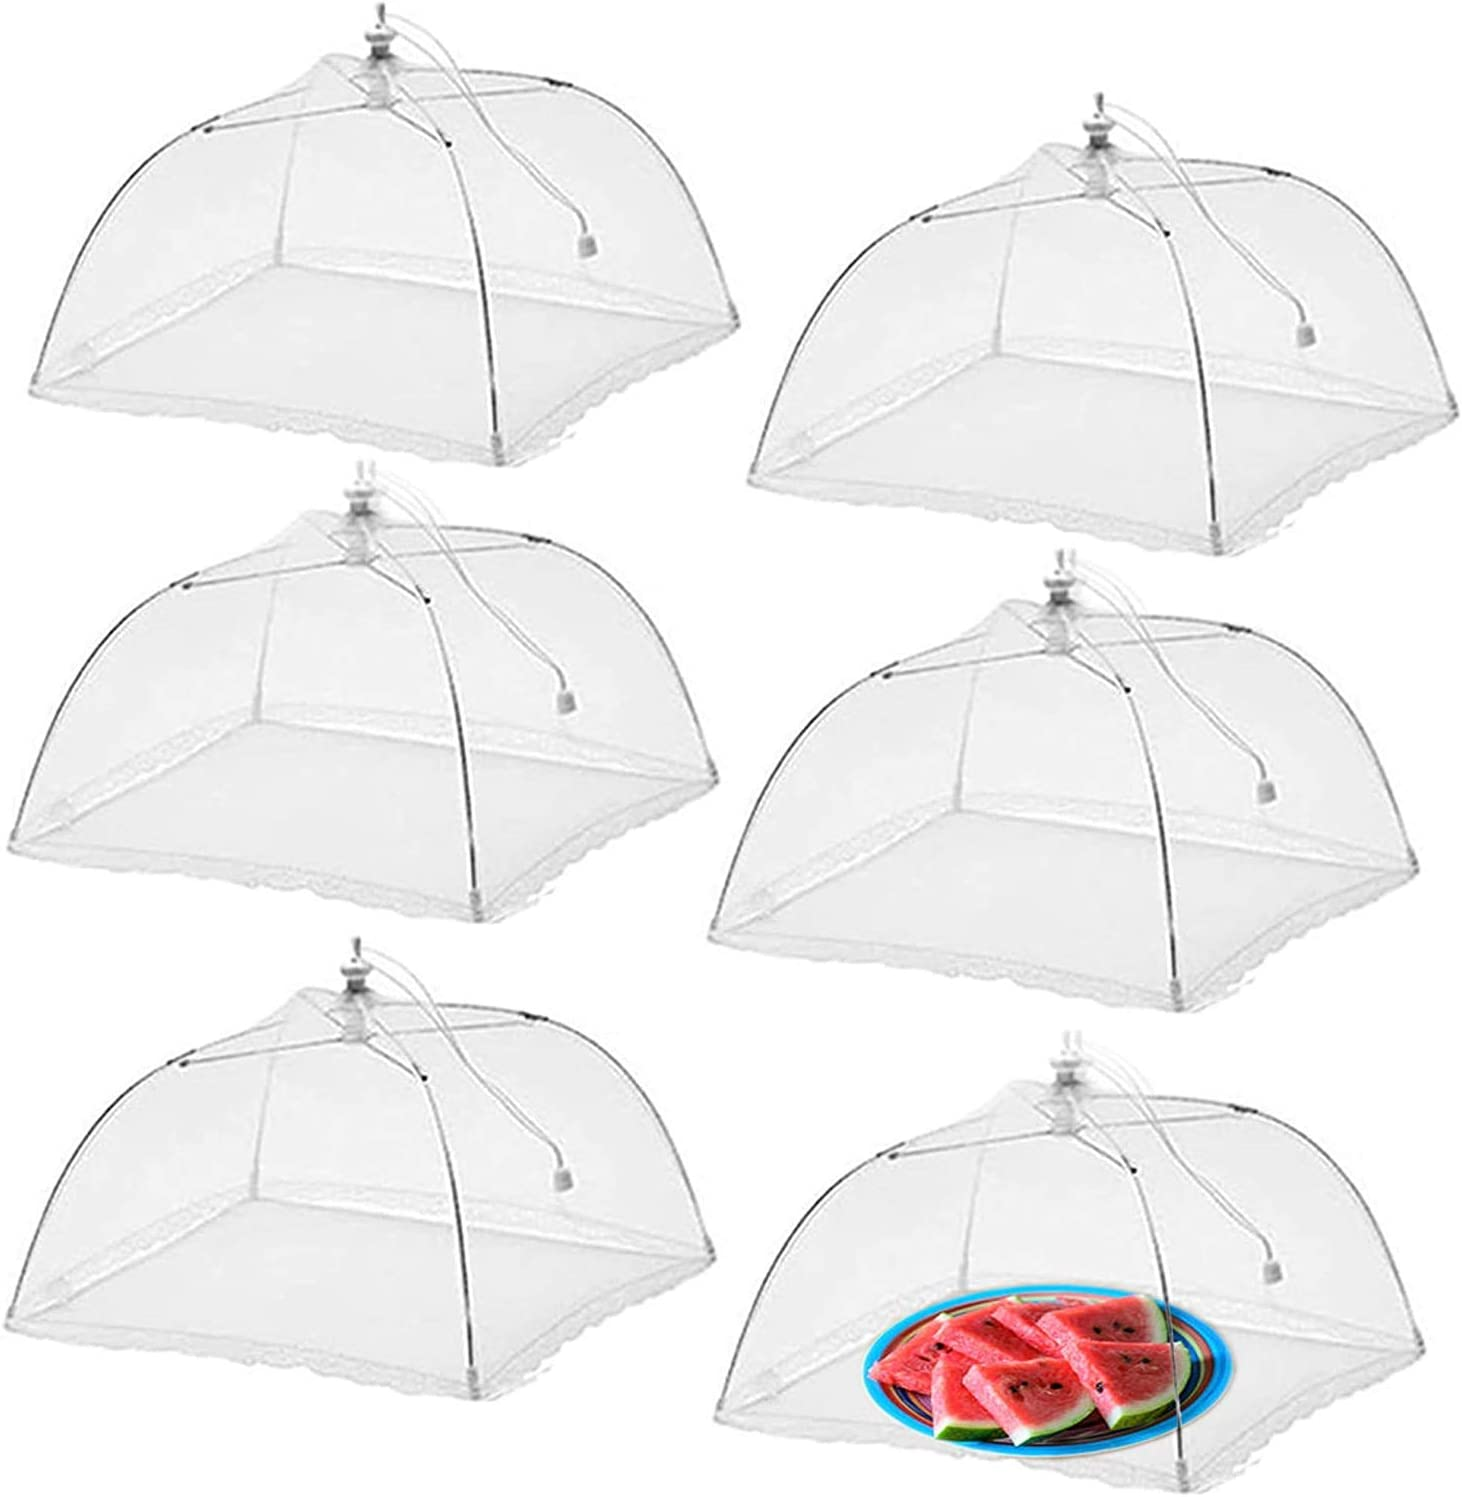 Simply Genius (6 Pack) Large and Tall 17x17 Pop-Up Mesh Food Covers Tent Umbrella for Outdoors, Screen Tents, Parties Picnics, BBQs, Reusable and Collapsible 6 PCS